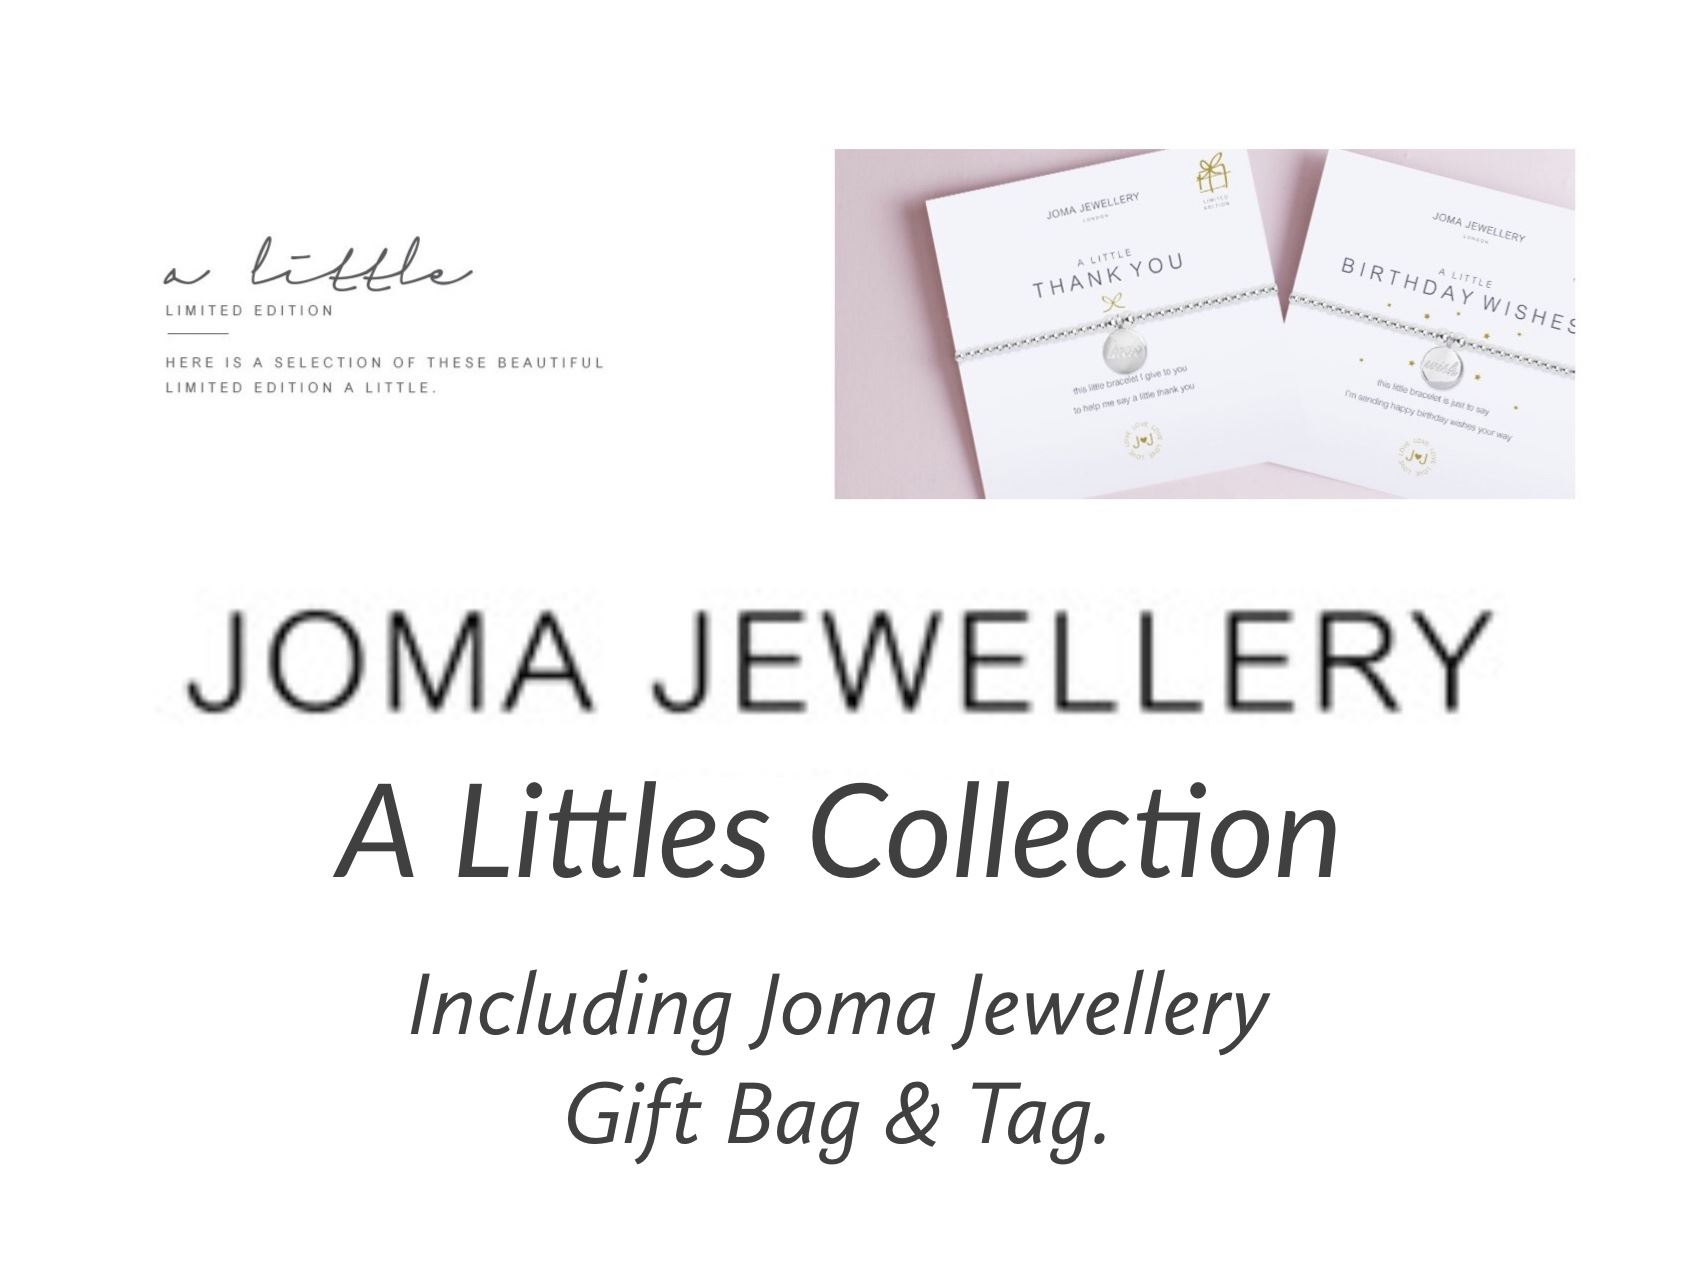 8297f0f3add92 Details about Joma Jewellery Bracelet A Littles Collection Charms Messages  Gift Bag & Tag